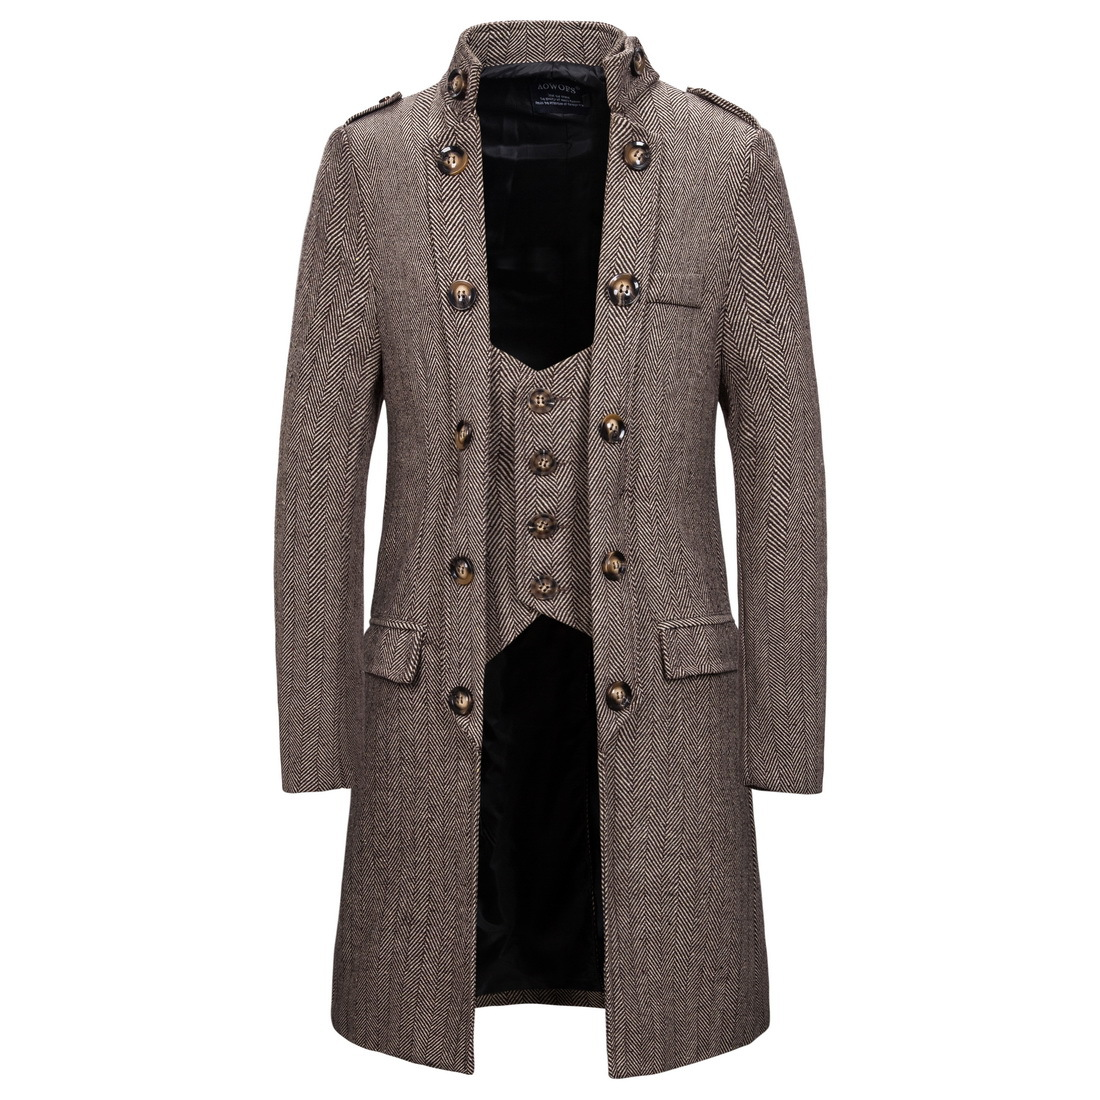 2019 New Men's Trench Coat Fake Two-piece Suit Outwear Winter Warm Long Trench Jacket Male Business Casual Overcoat Parka